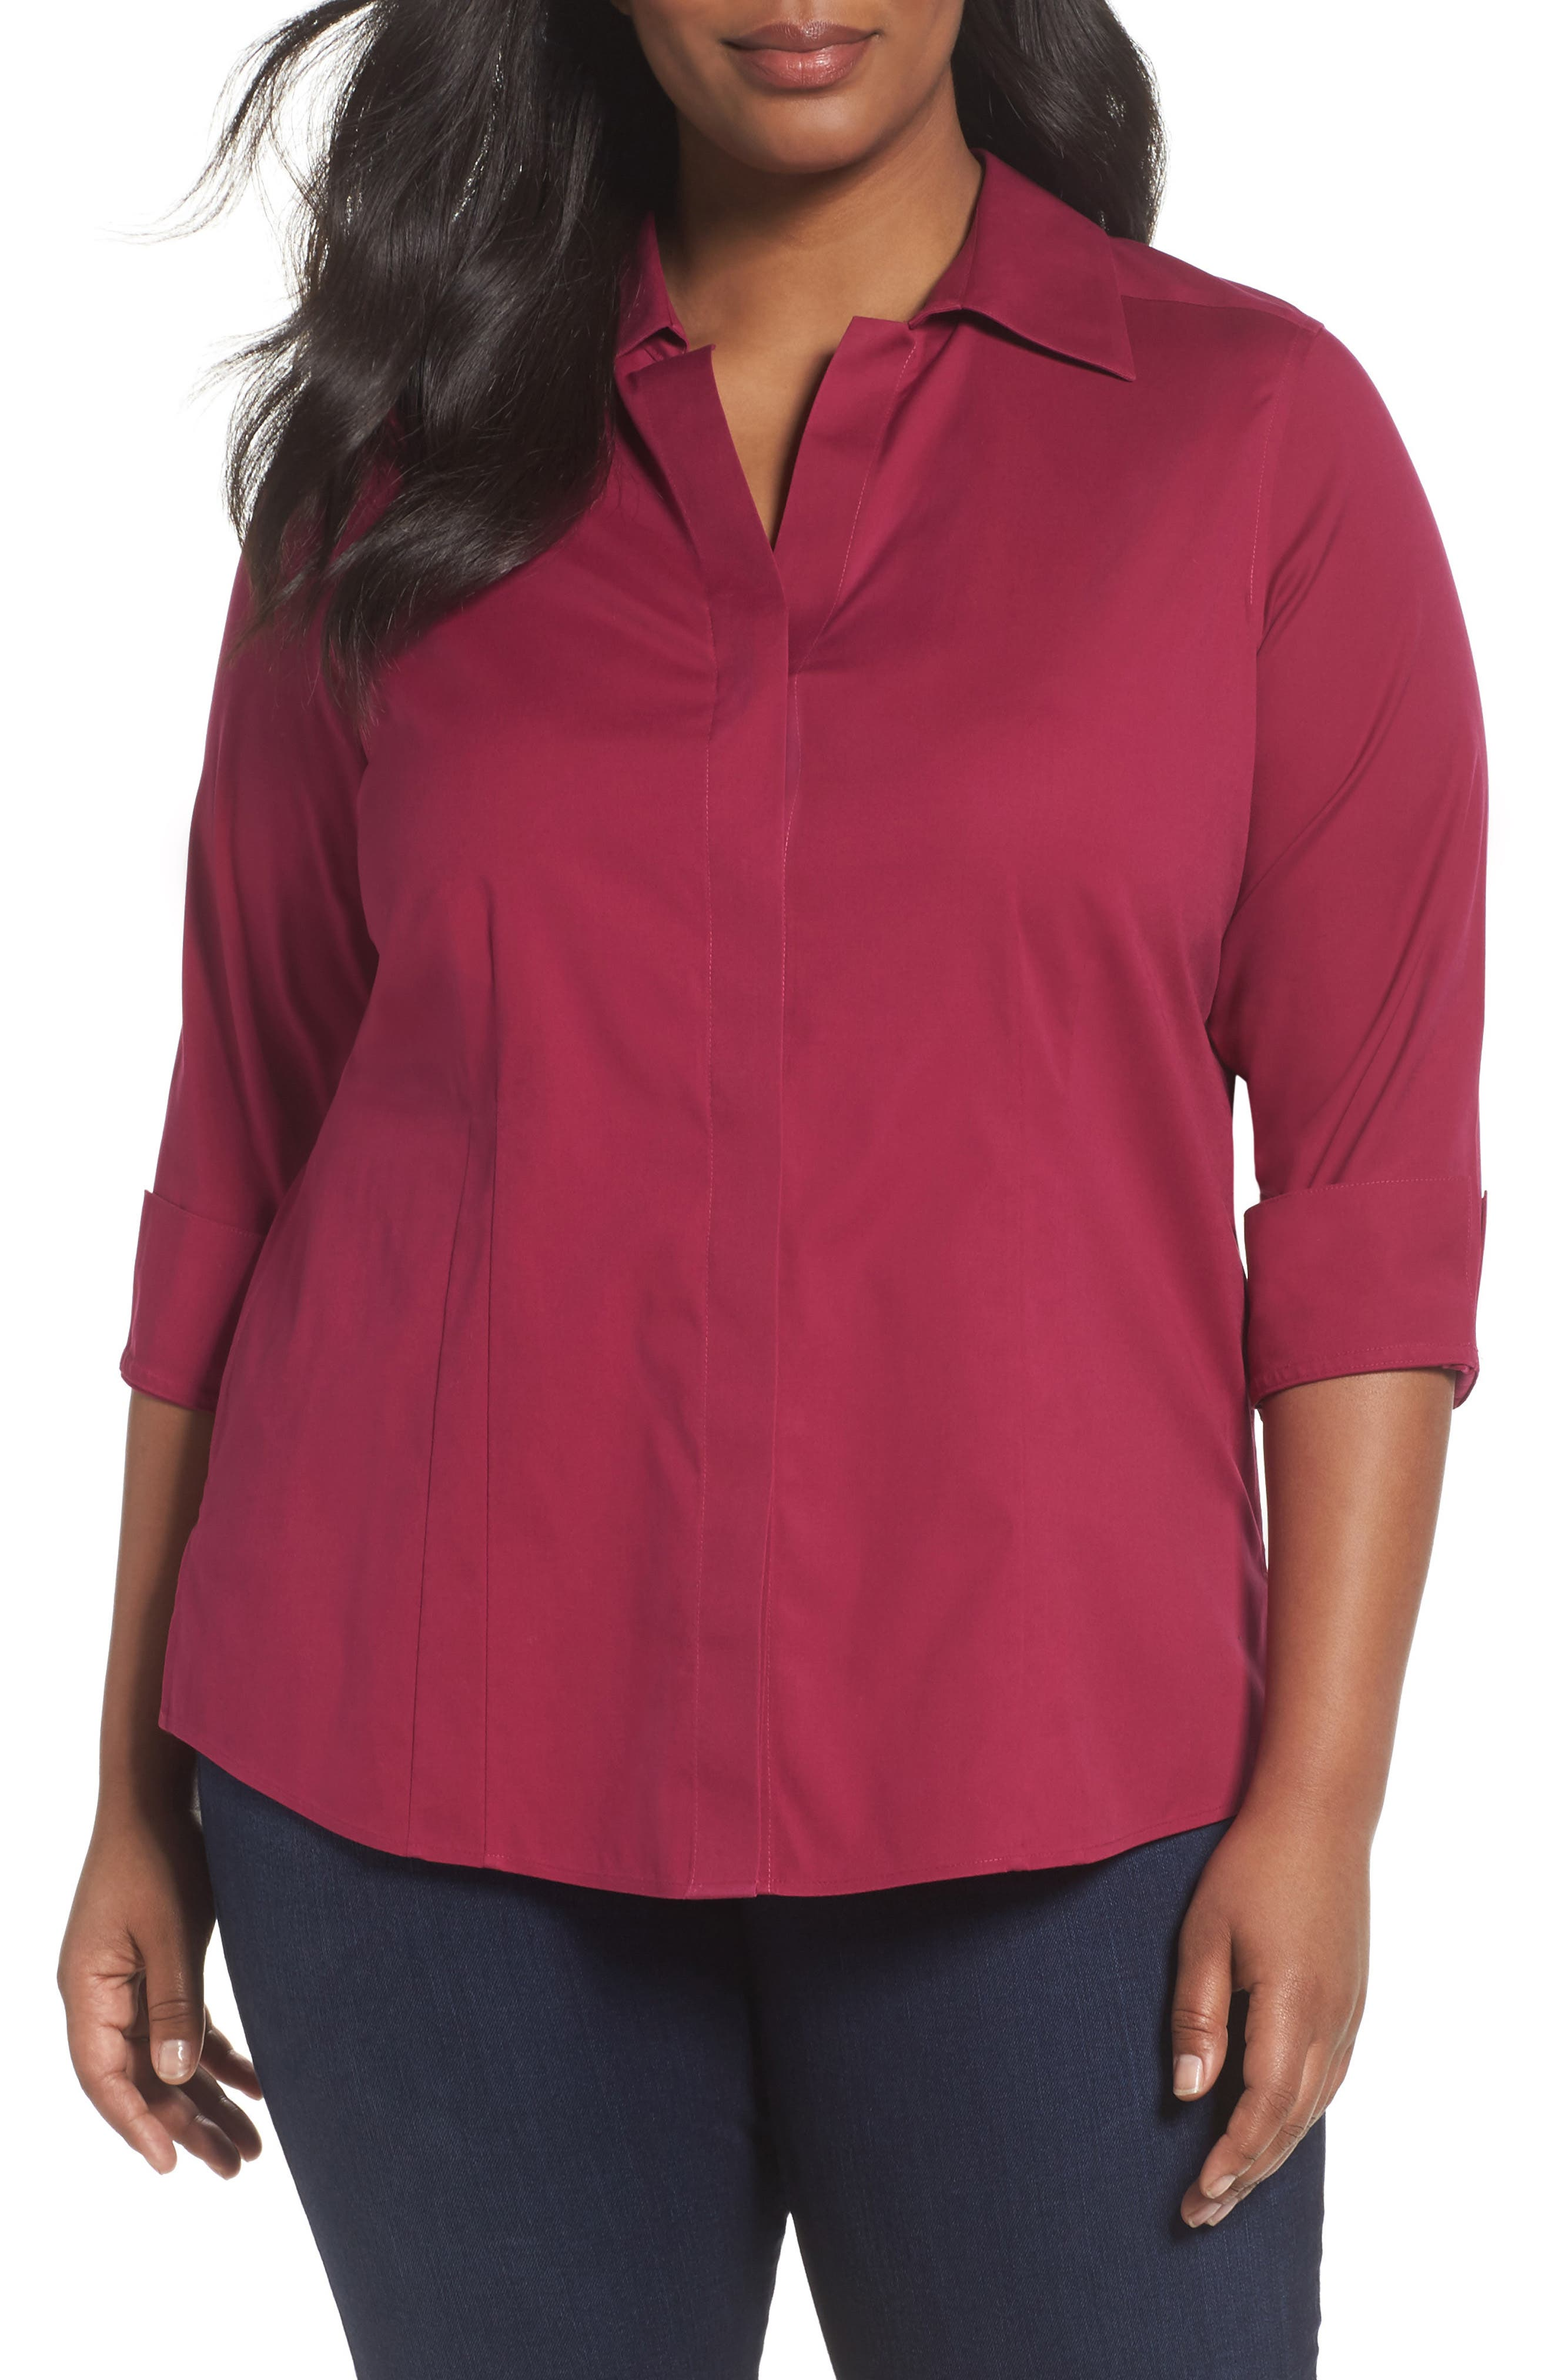 Foxcroft Taylor Free Fit Stretch Blouse (Plus Size)